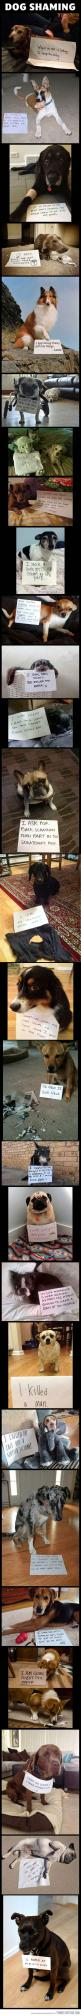 "Dog shaming is hilarious"": Shaming Compilation, Dog Shame, Funny Dogs, Dog Shaming, Funny Stuff, Puppy, So Funny"